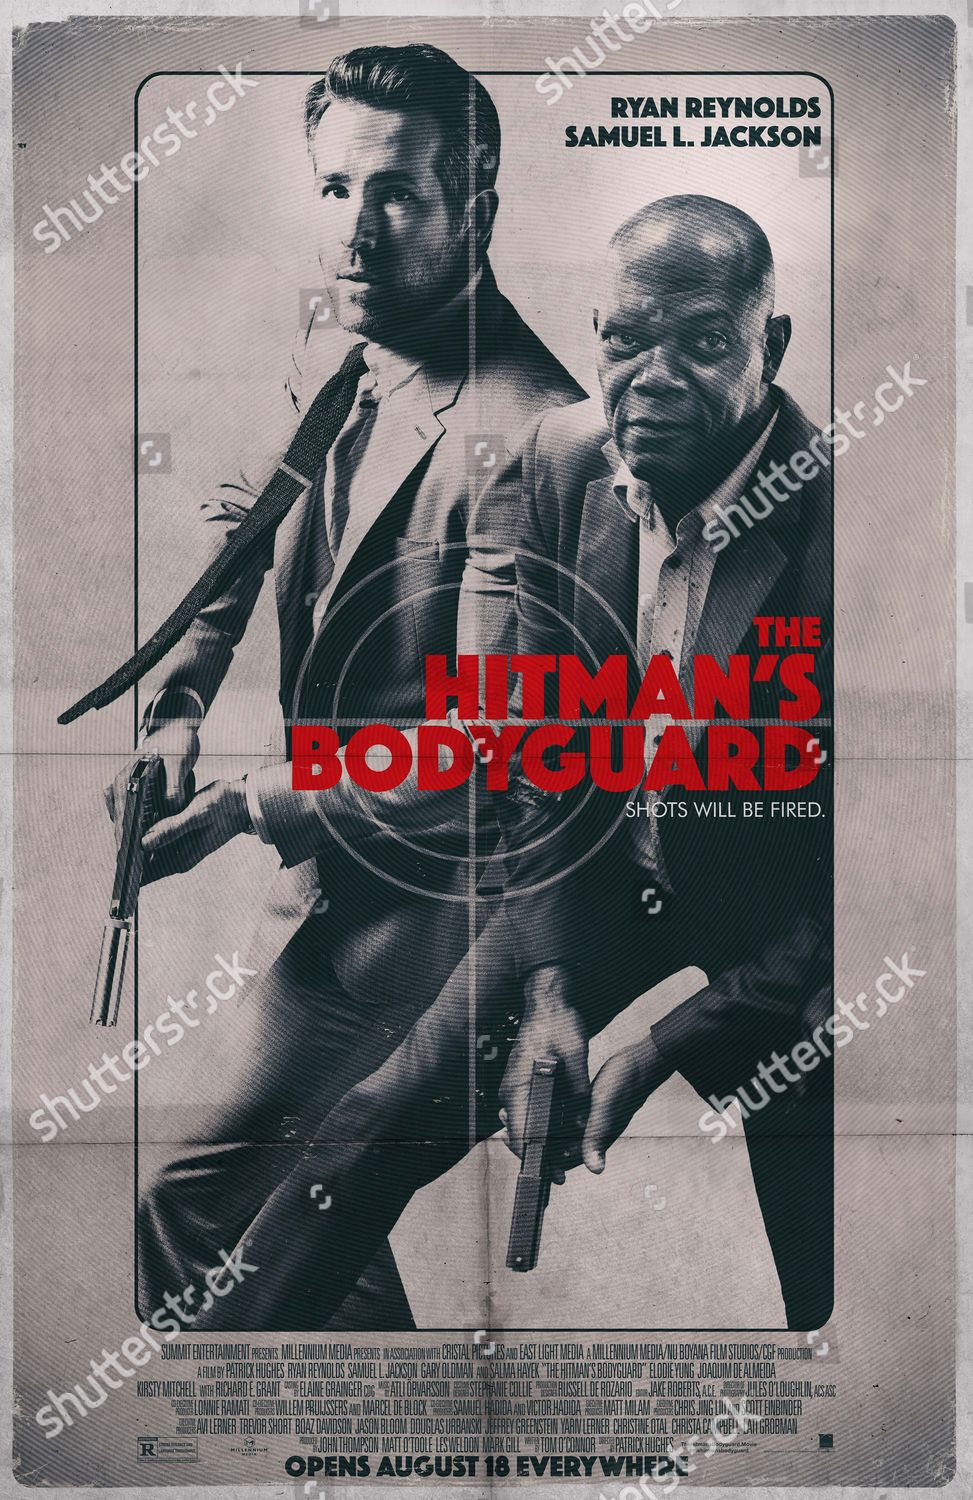 Hitmans Bodyguard 2017 Poster Art Ryan Reynolds Editorial Stock Photo Stock Image Shutterstock